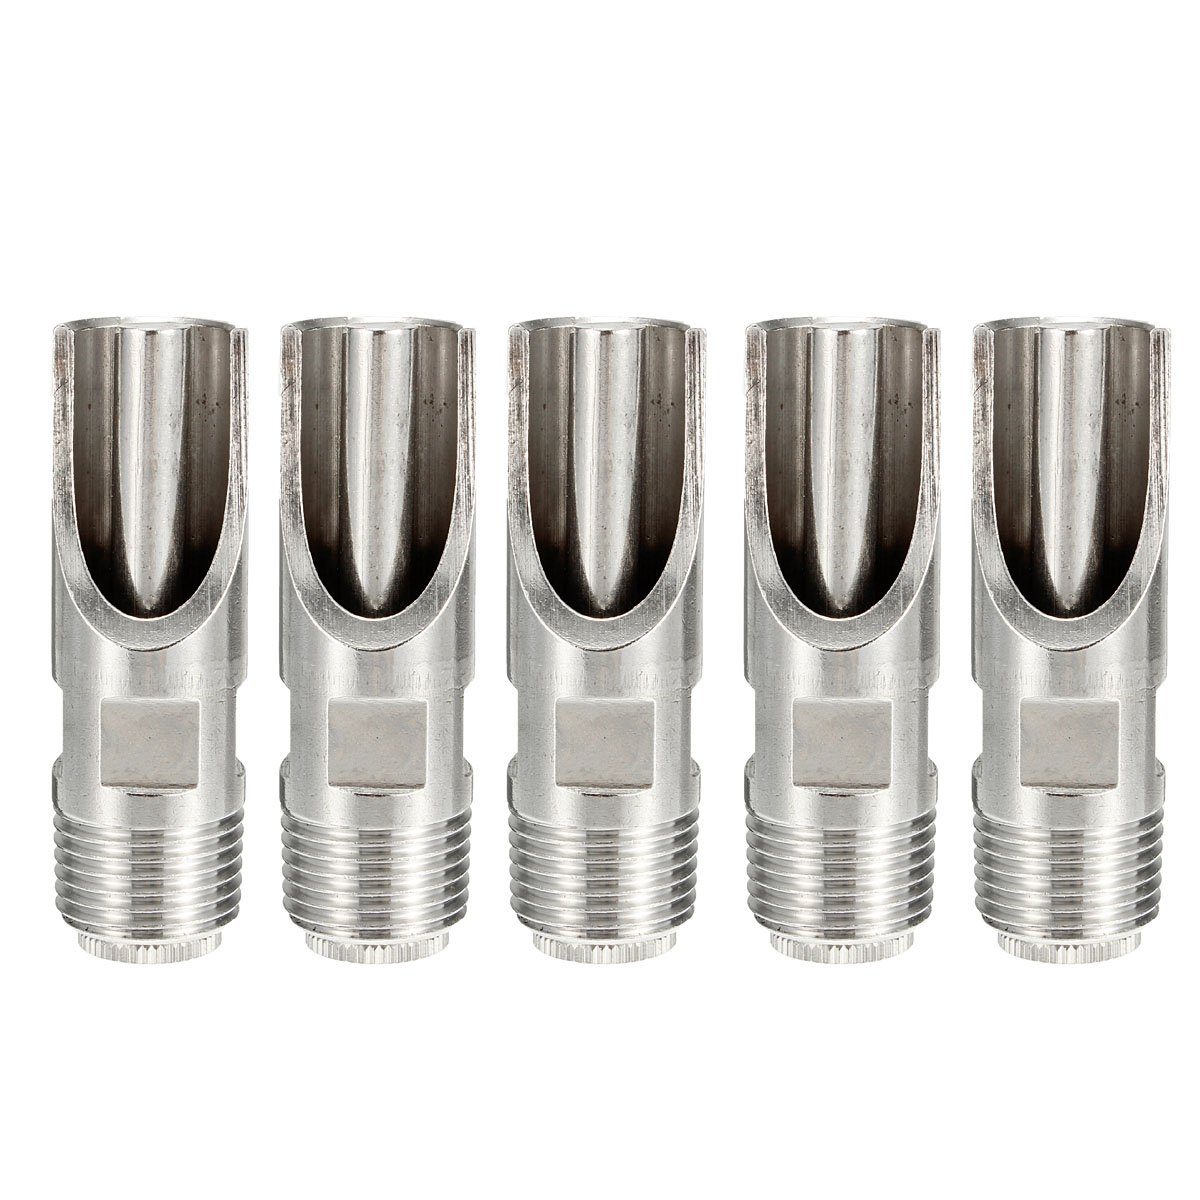 5Pcs 1/2 Inch Stainless Steel Pig Automatic Nipple Drinker Feeder Duck-Billed Waterer